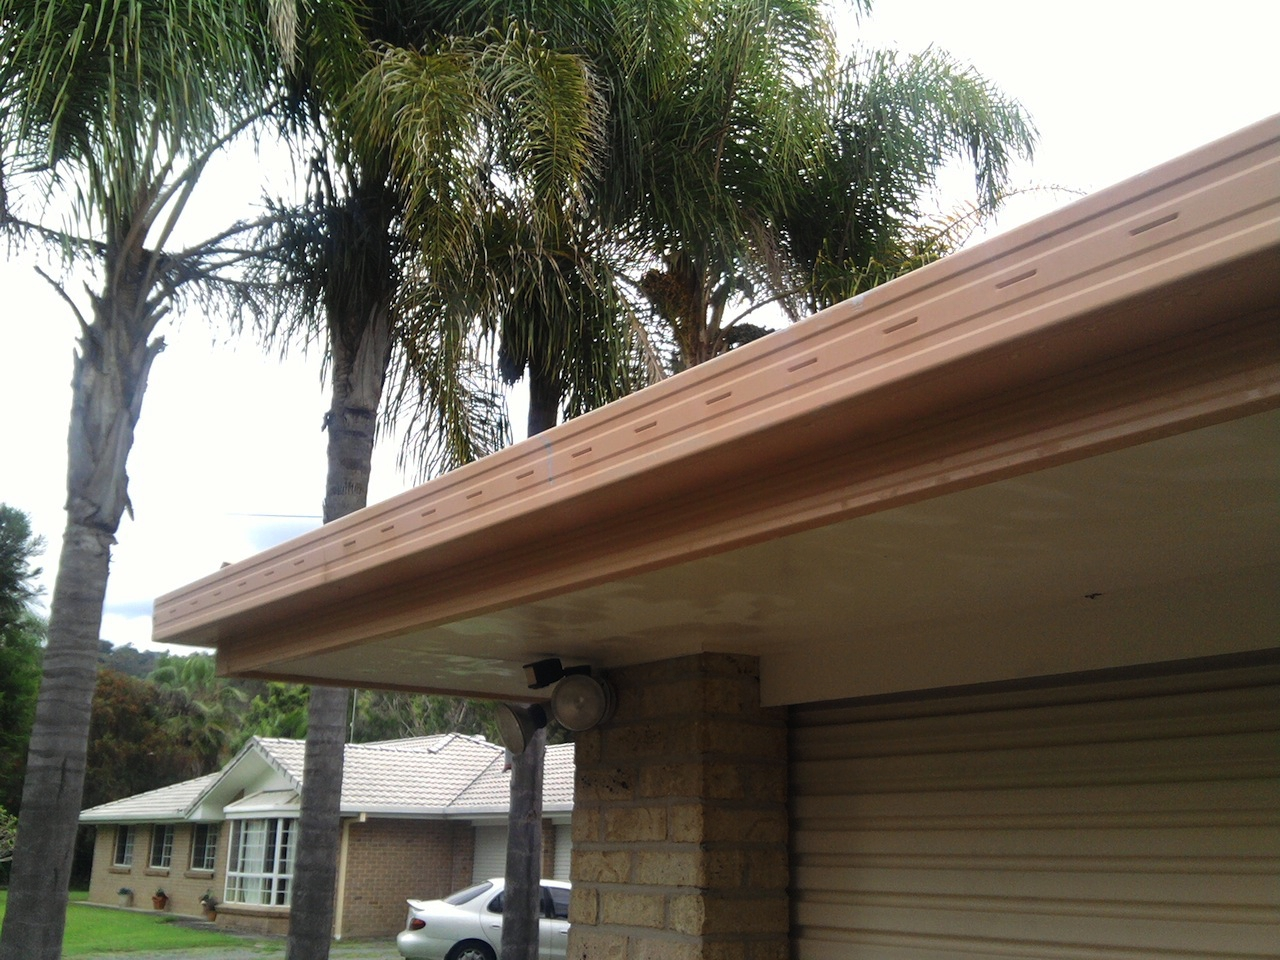 Gutters after pressure cleaning